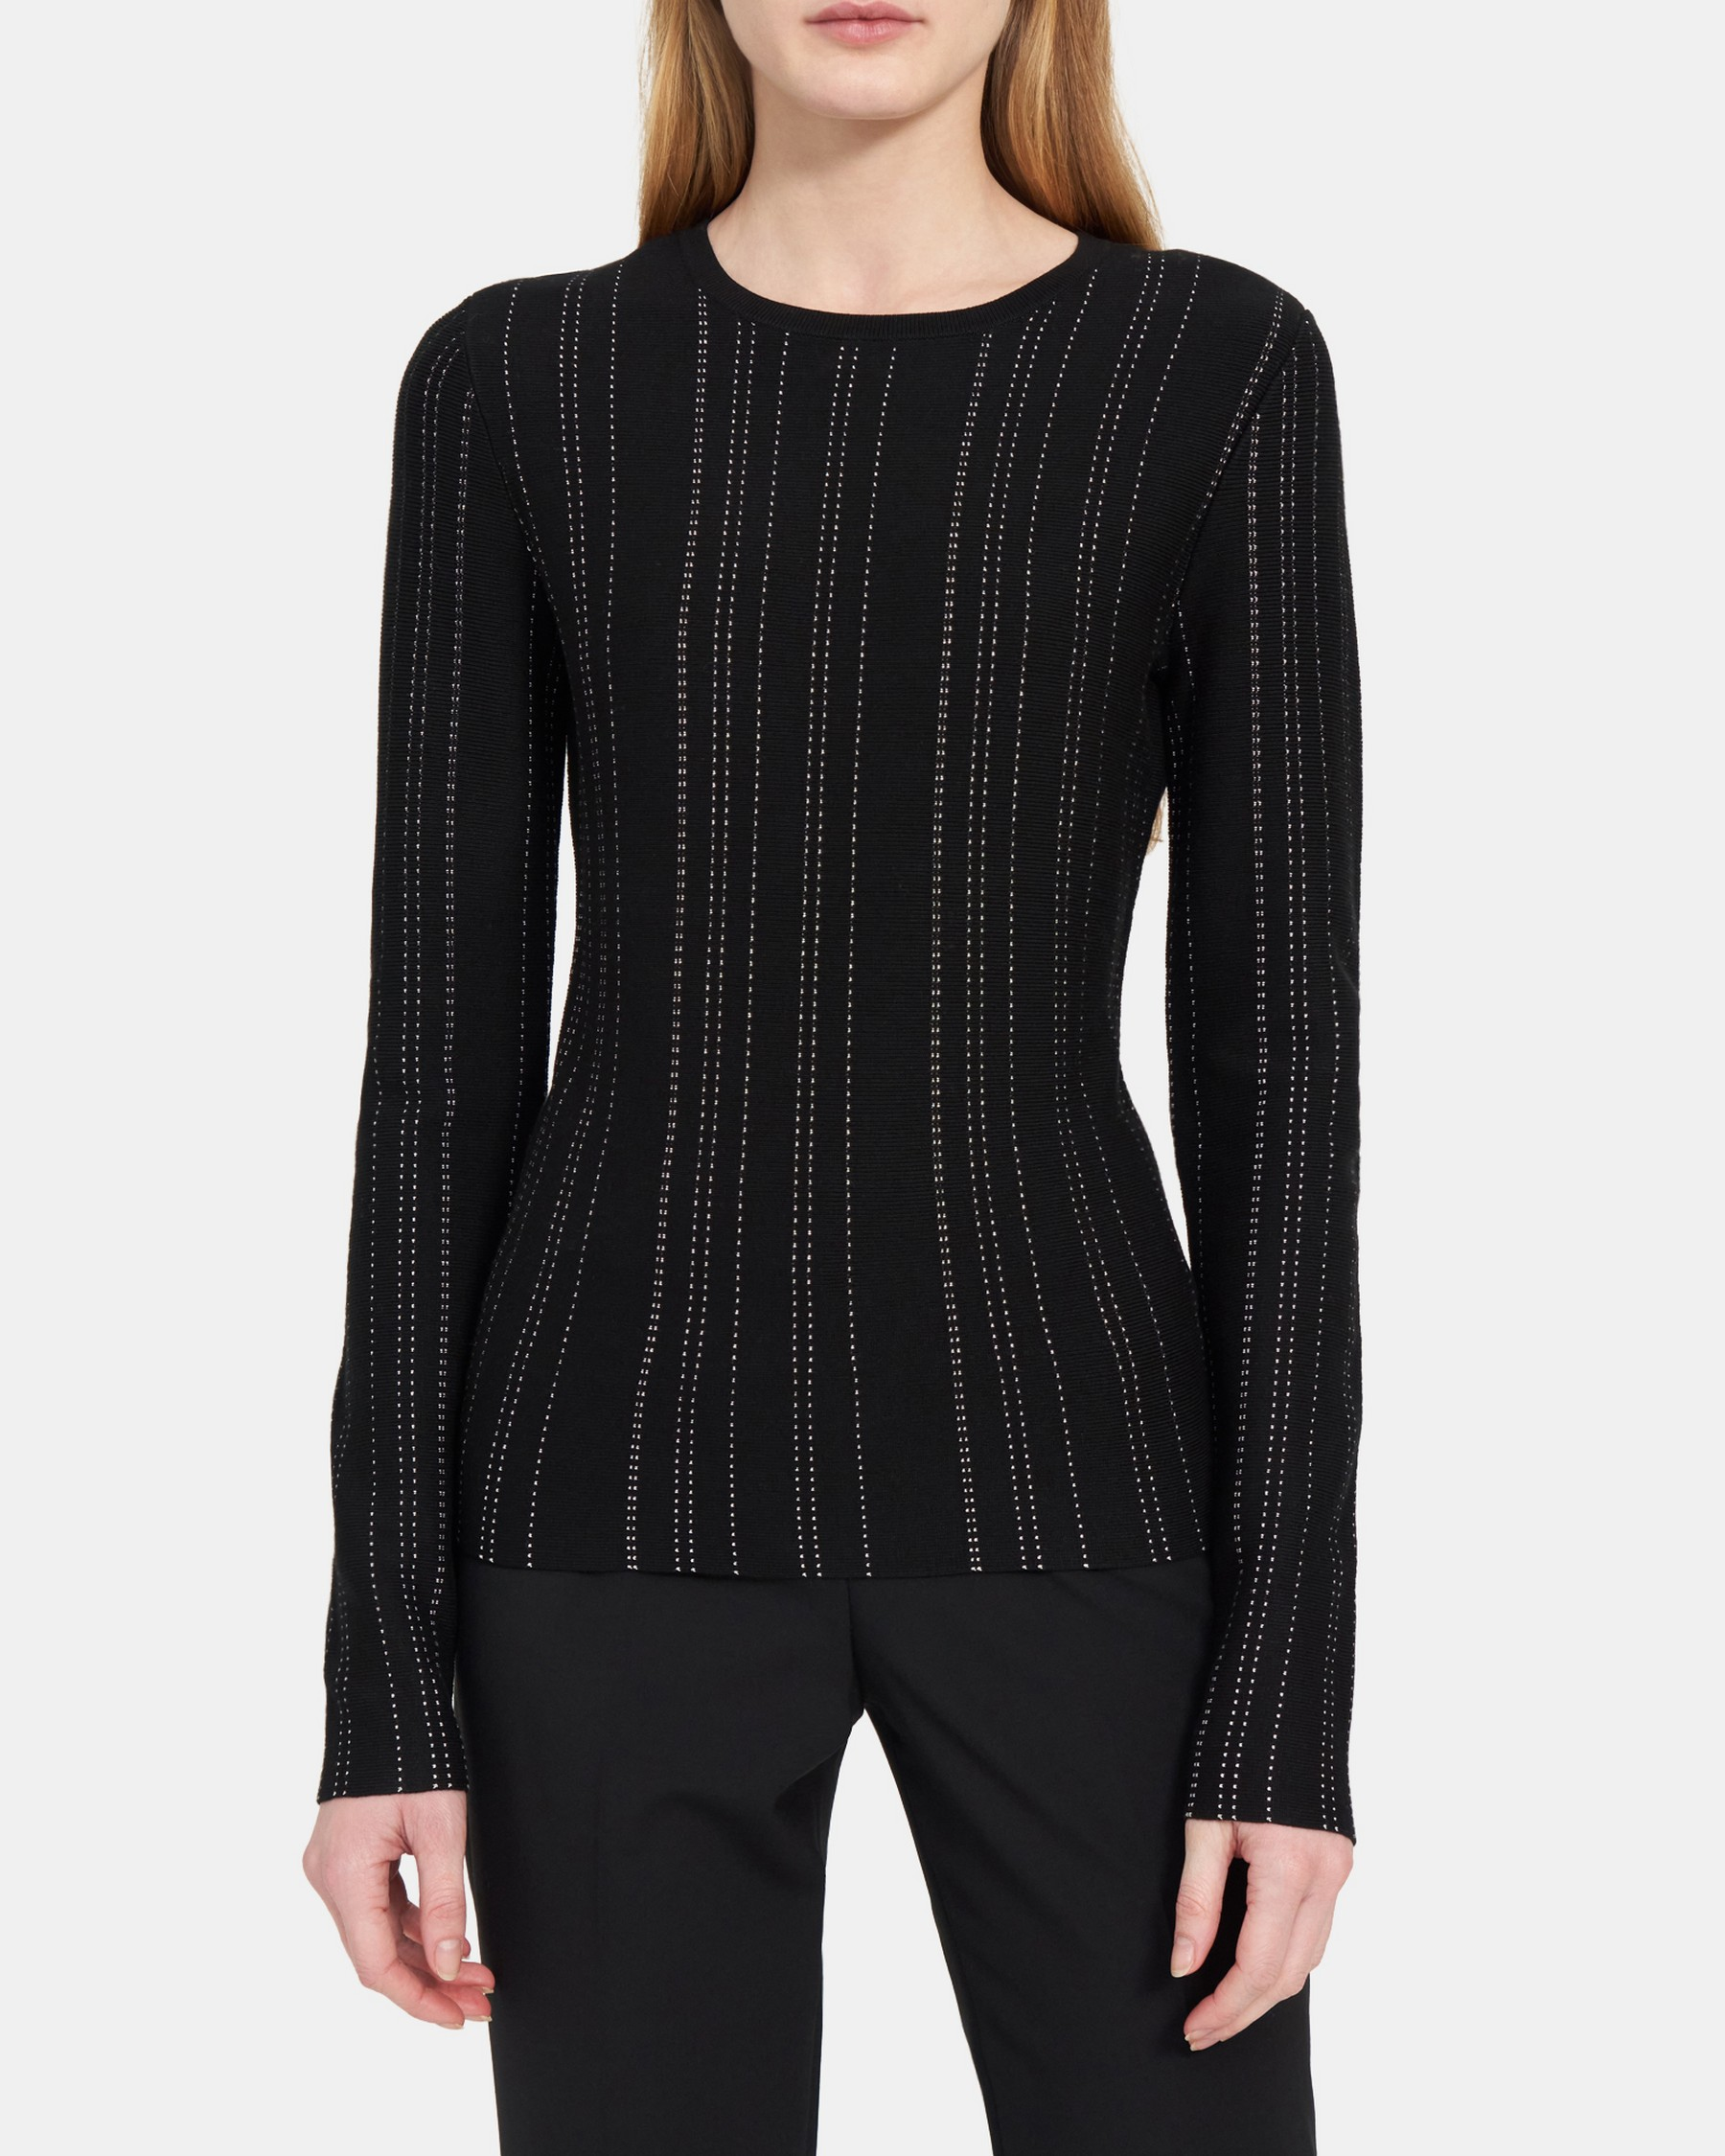 Slim Crewneck in Compact Sweater Knit   Theory